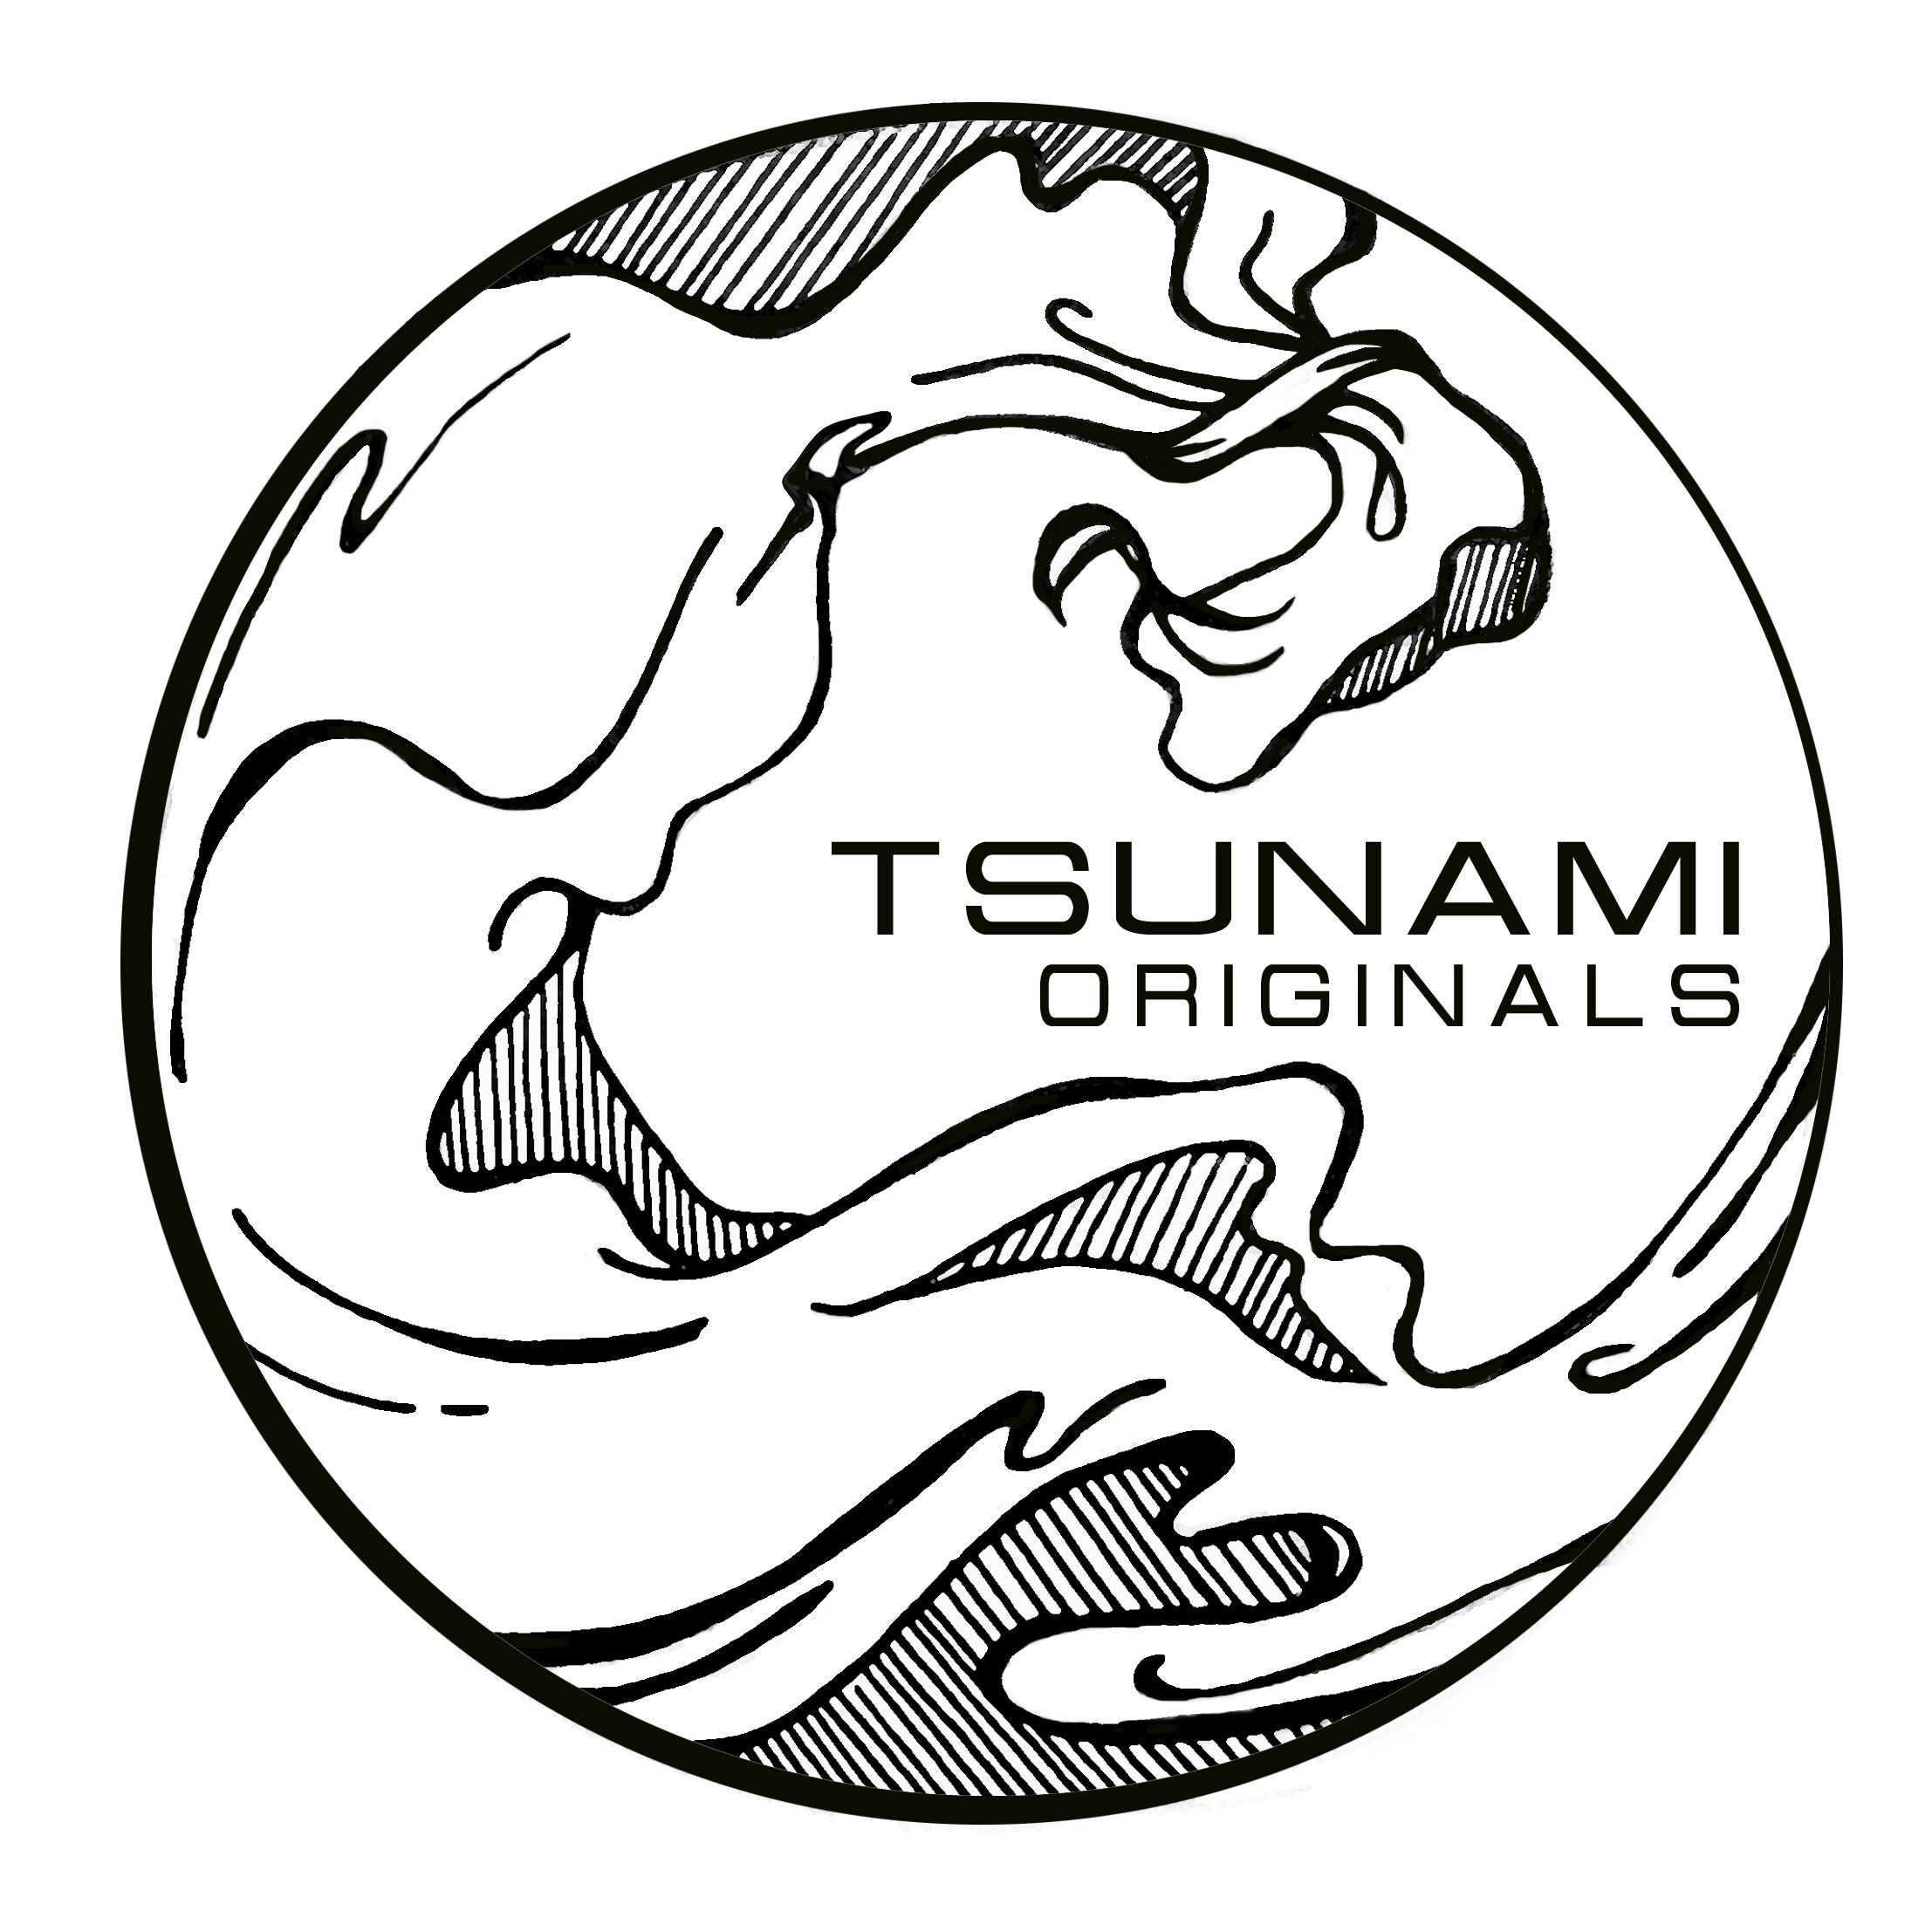 Tsunami Originals